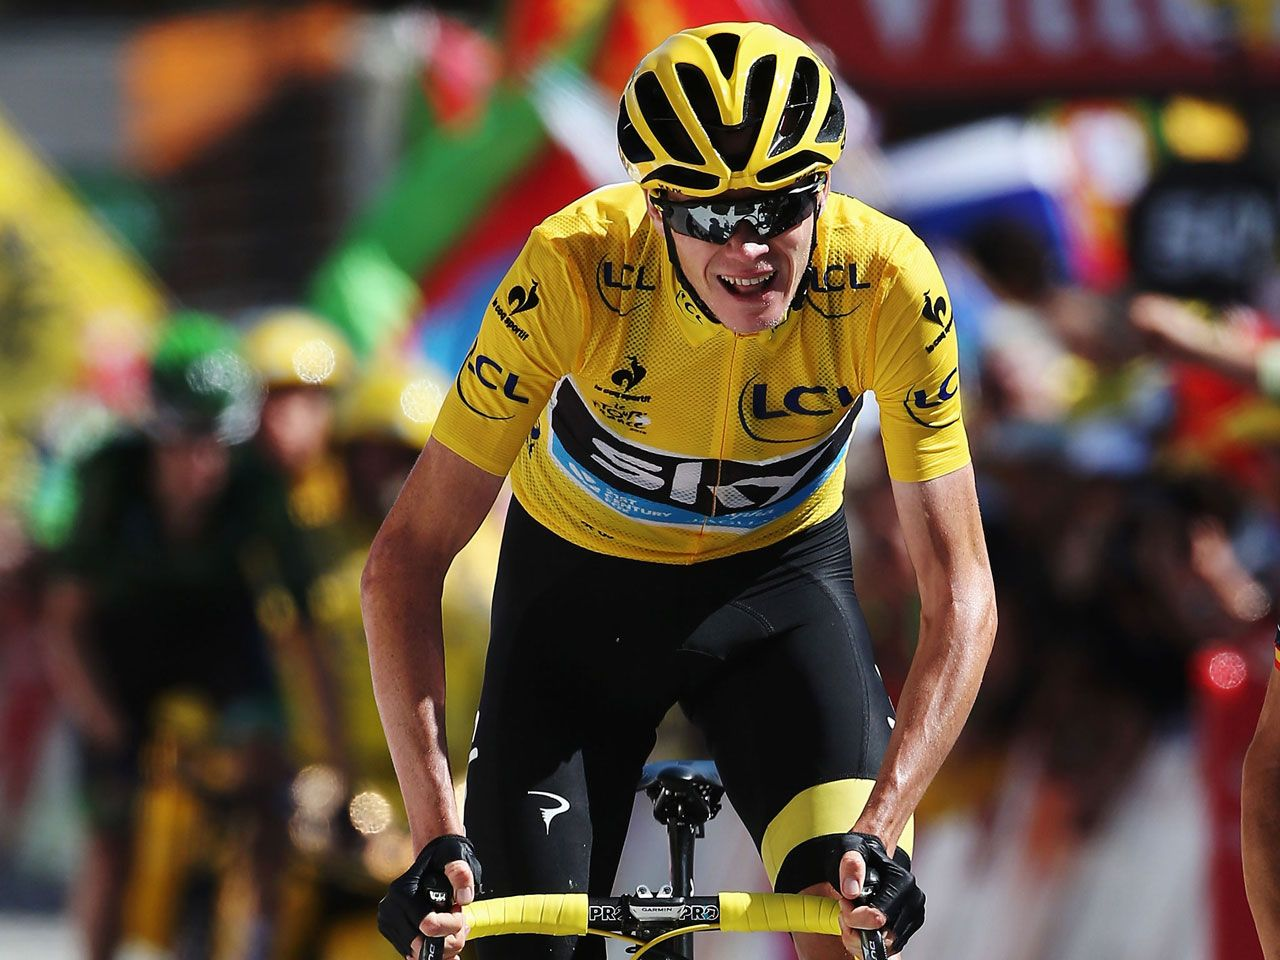 Christopher Froome 2015 Tour de France